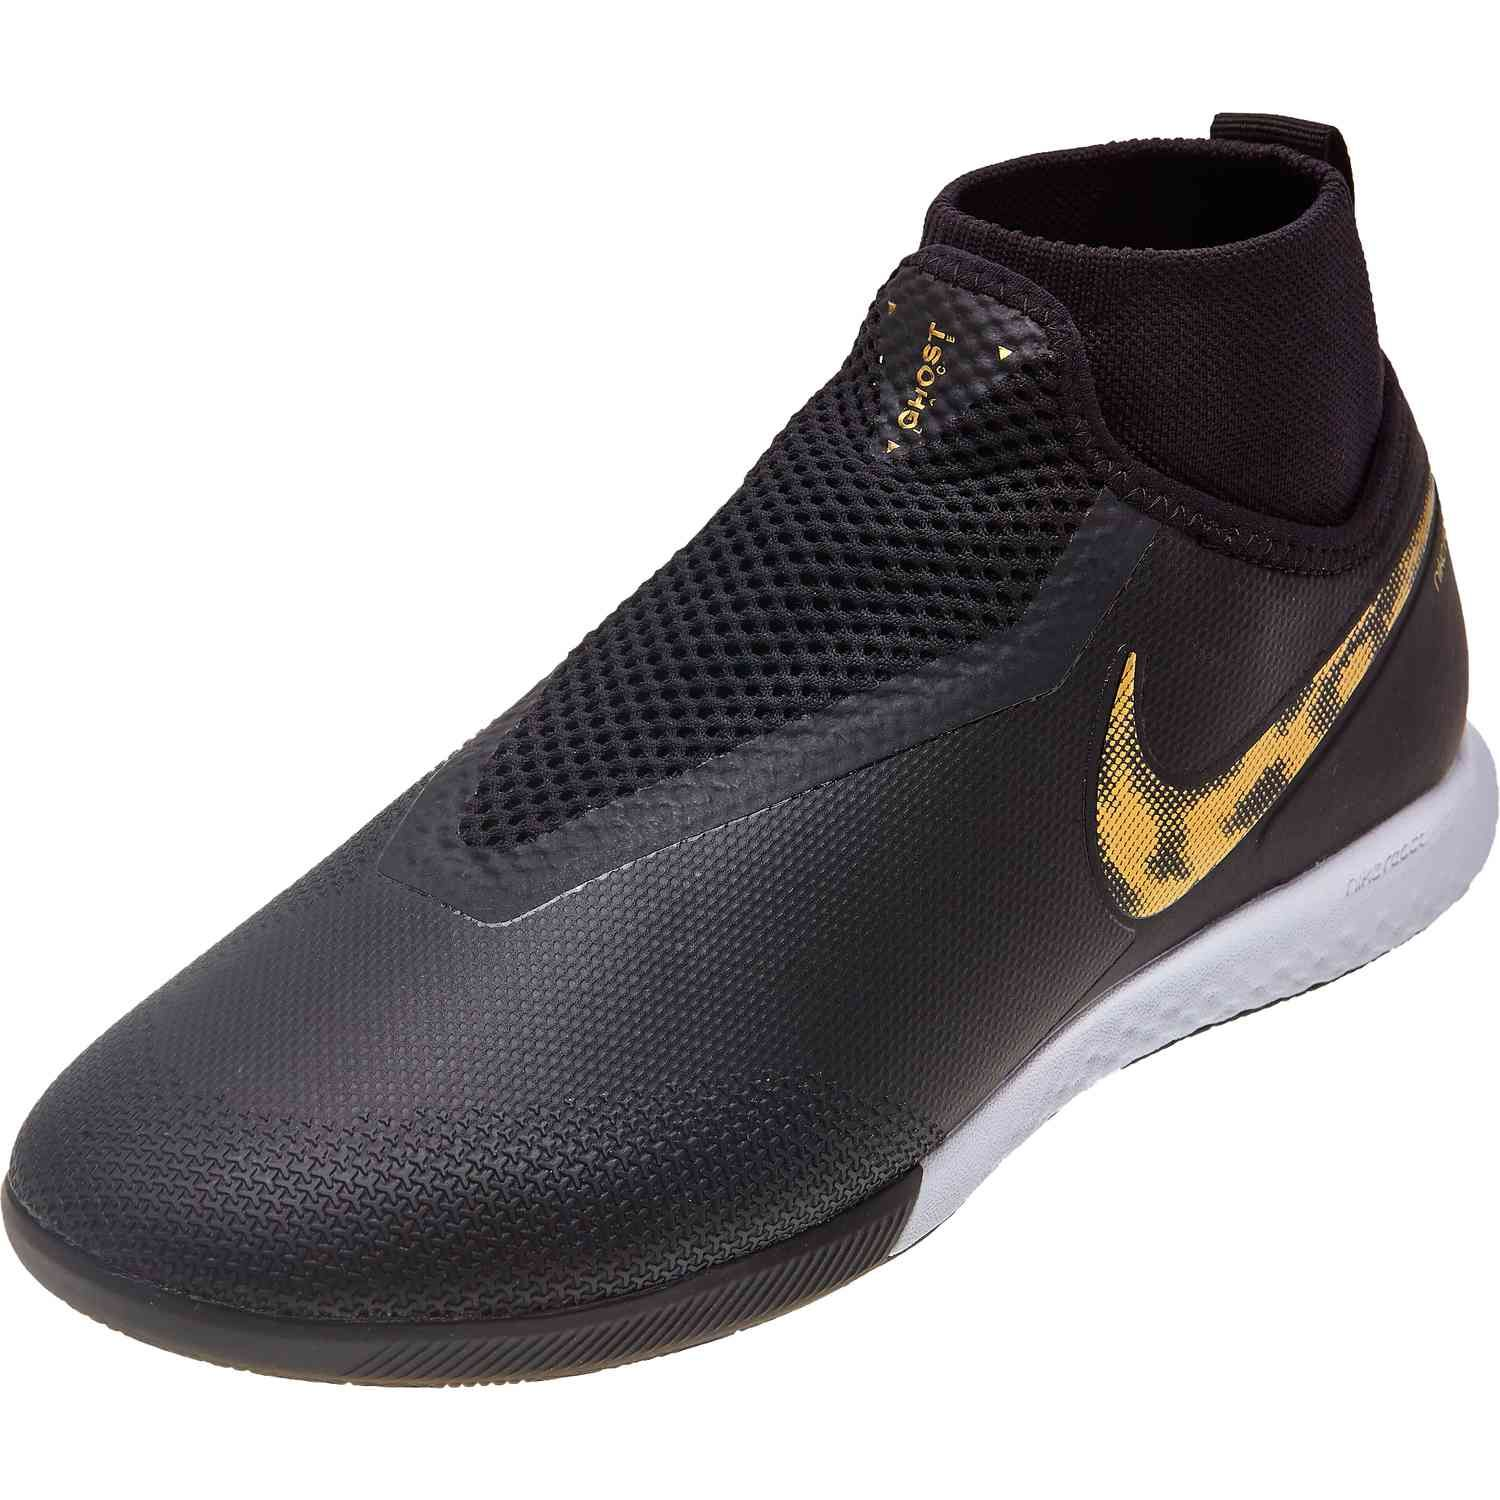 3c5f2ae14c02c Buy the Black Lux pack Nike Phantom Vision Pro indoor soccer shoes from  SoccerPro right now.